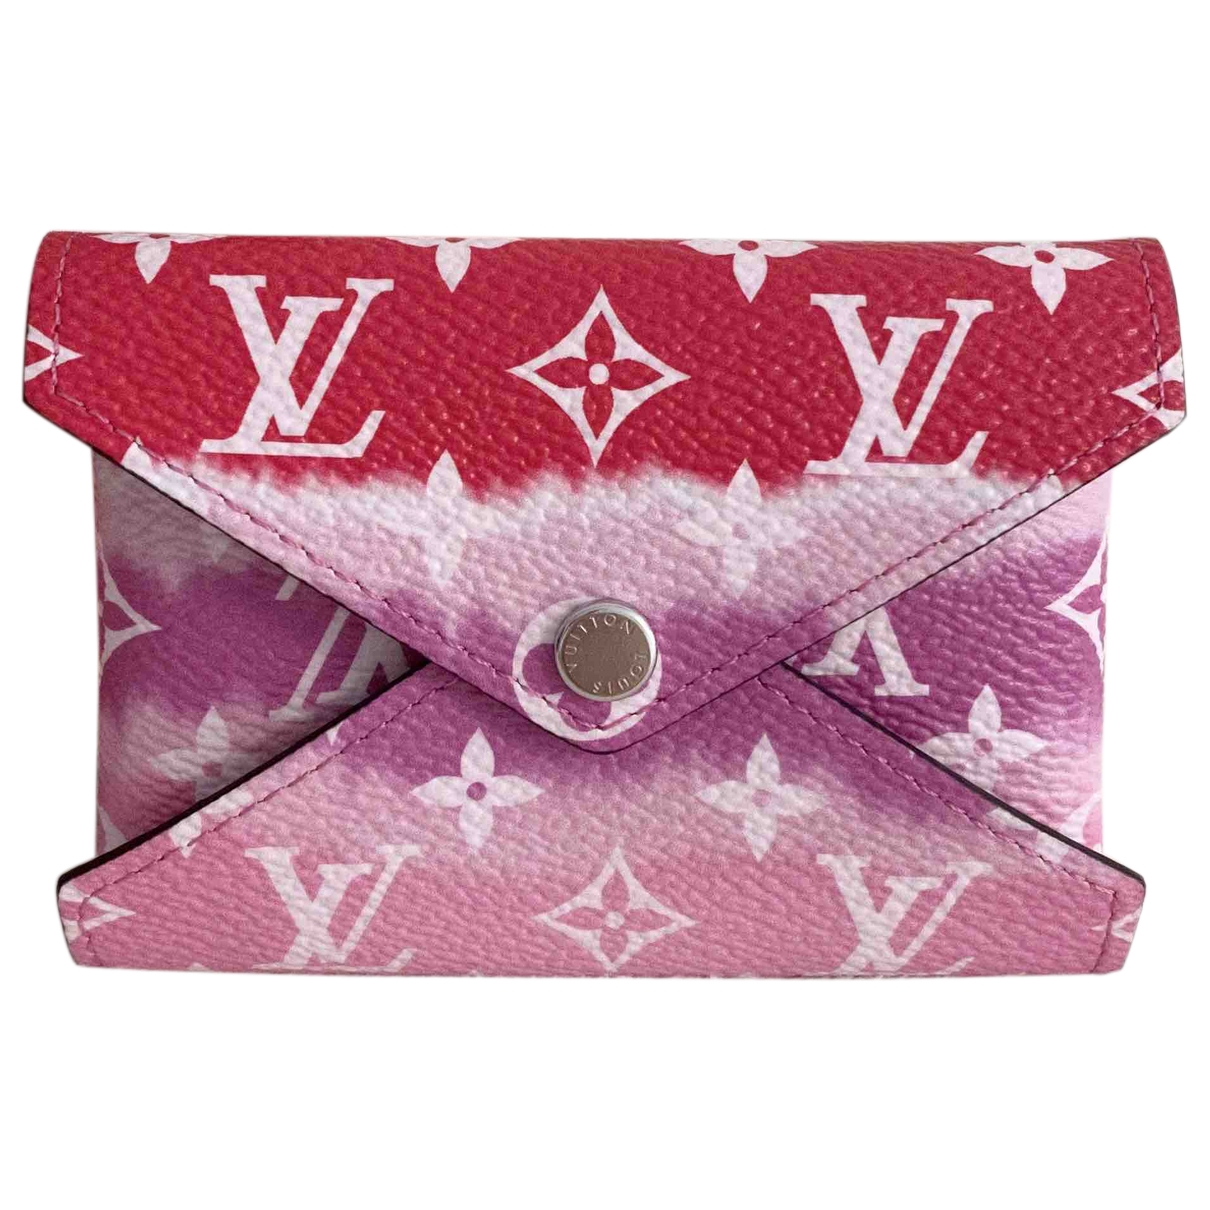 Louis Vuitton Kirigami Red Cloth Purses, wallet & cases for Women \N